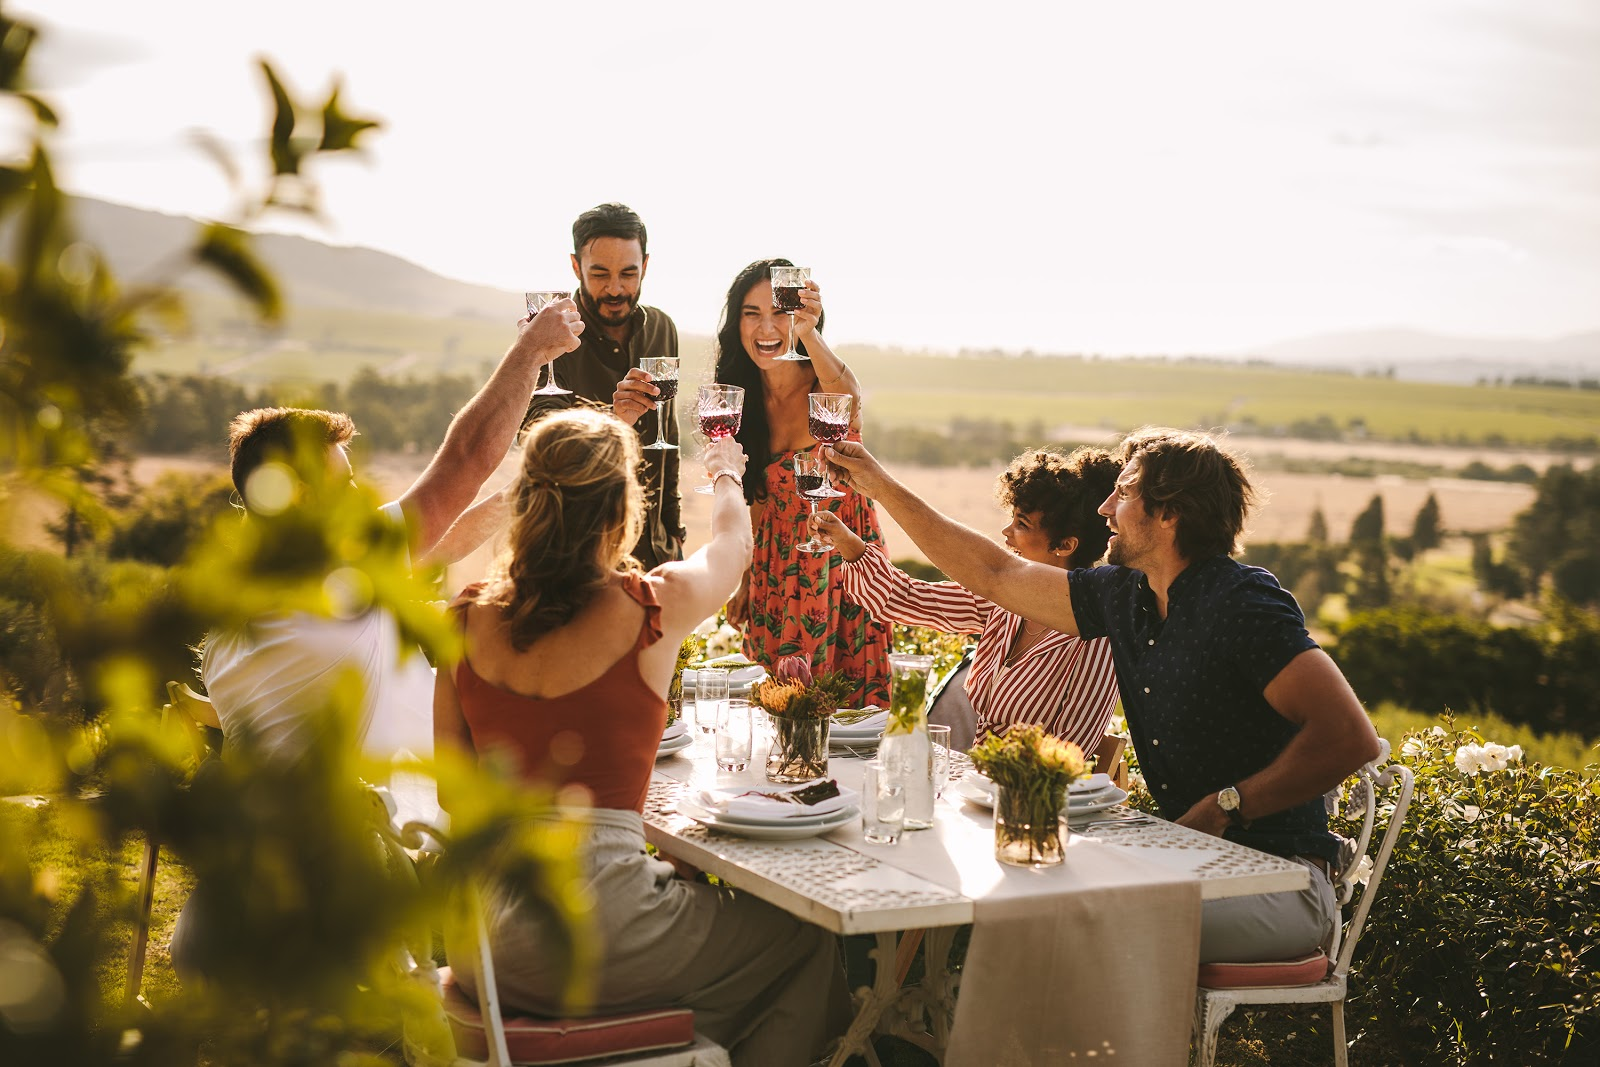 Engagement party ideas: Group of friends toasting wine during a party